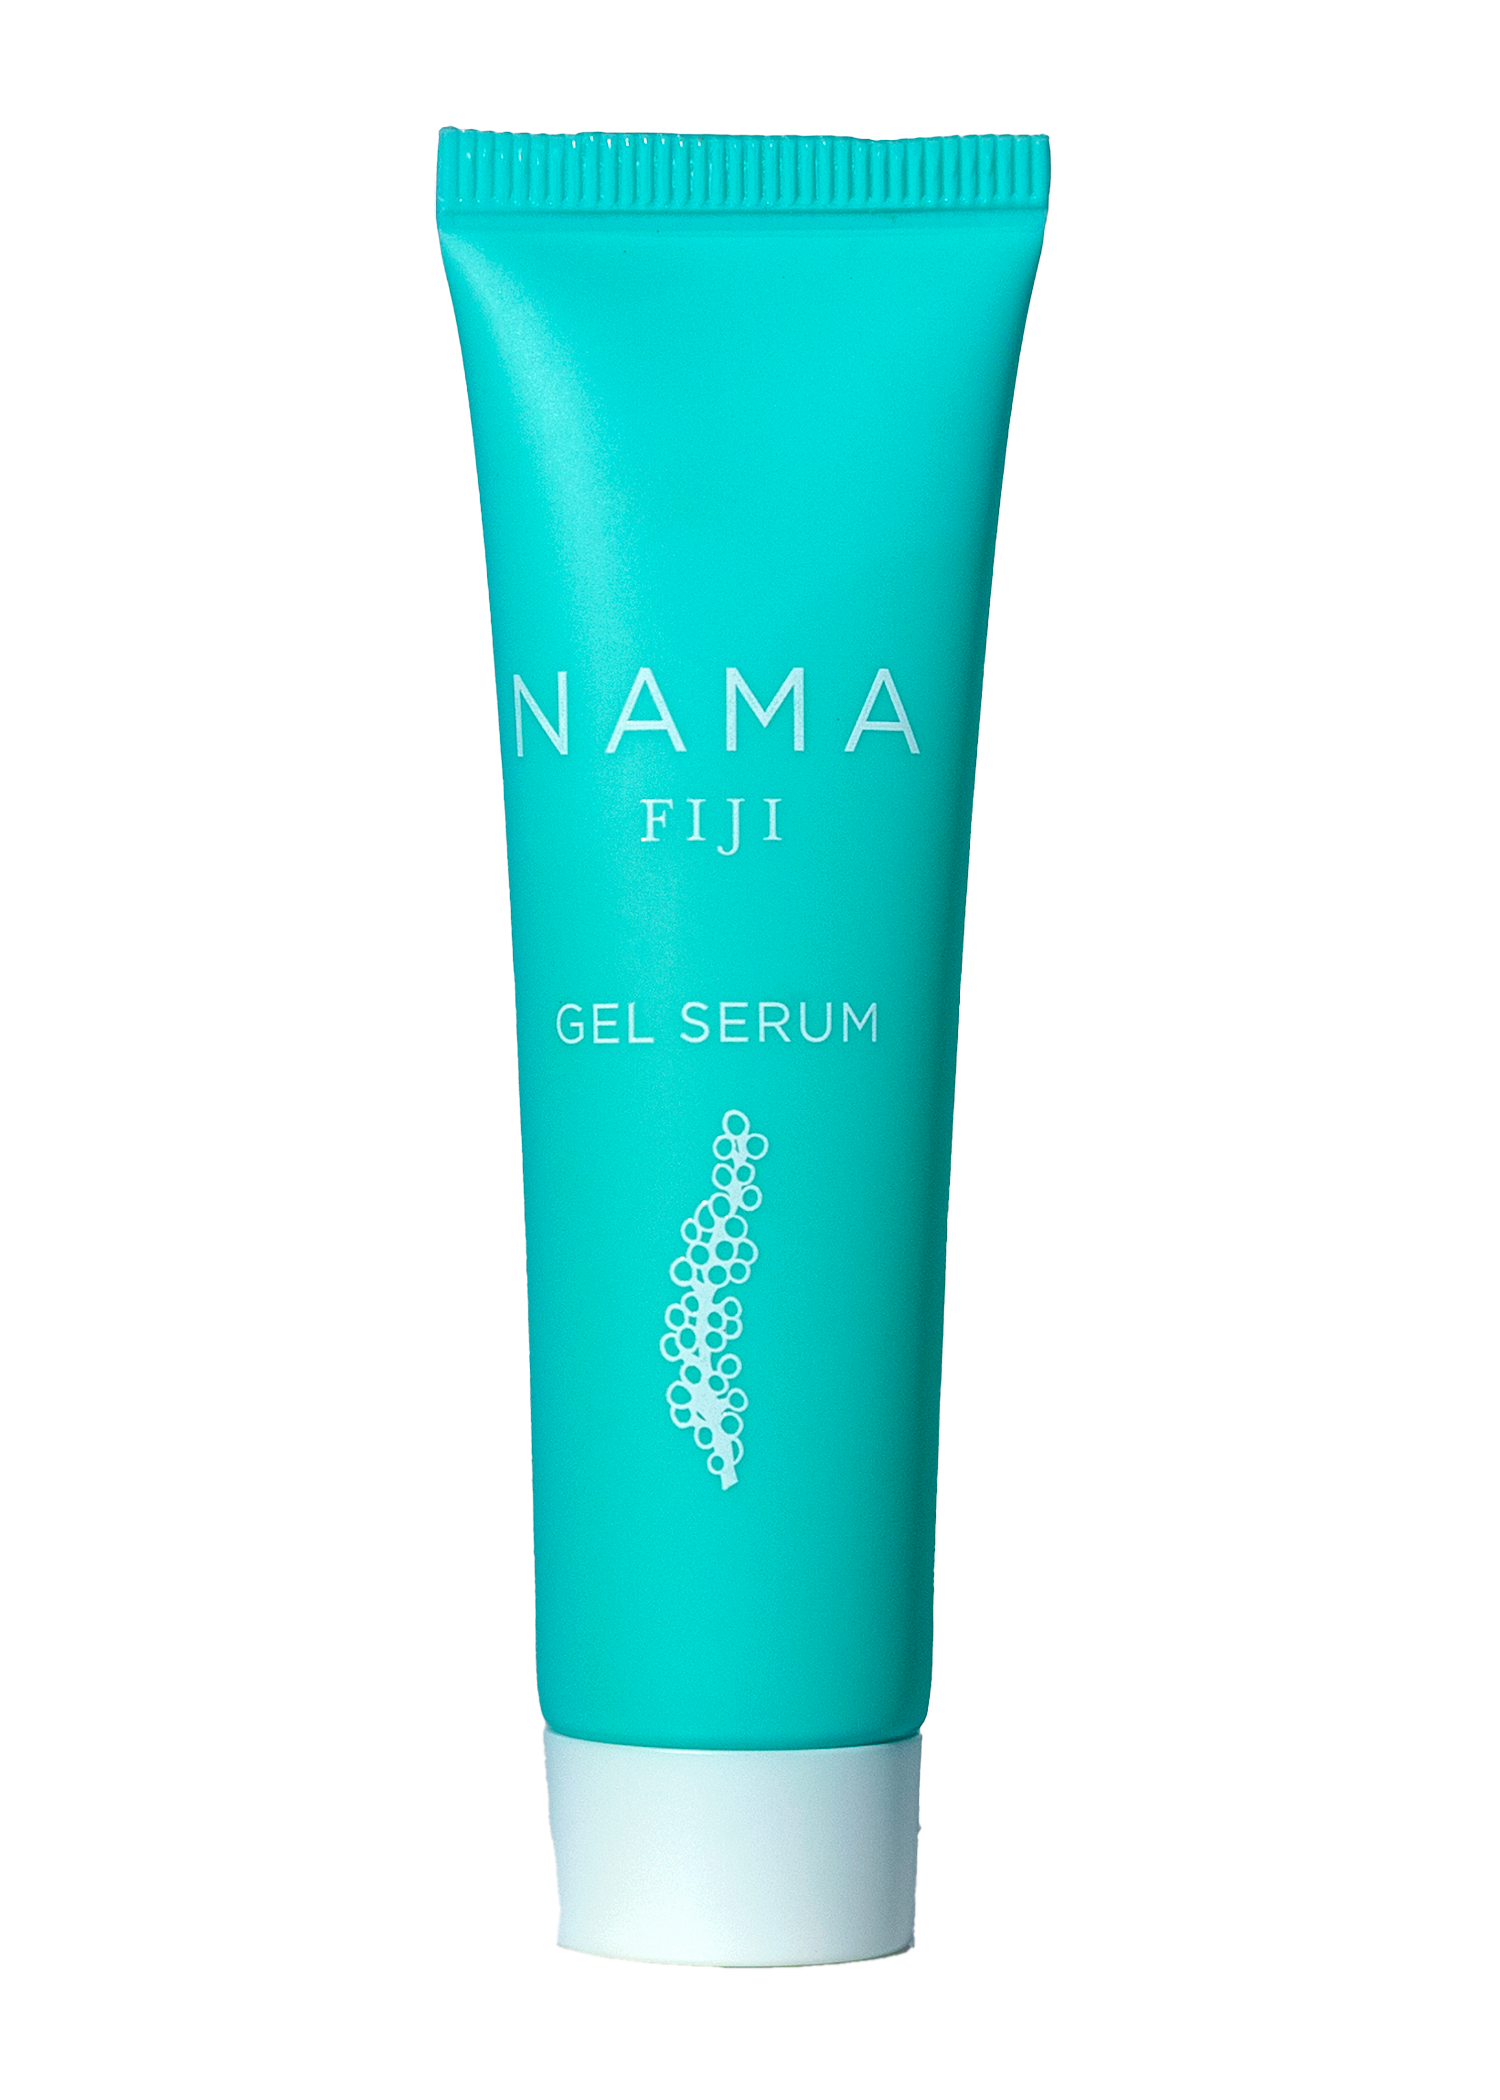 Nama Fiji Gel Serum 15ml tube